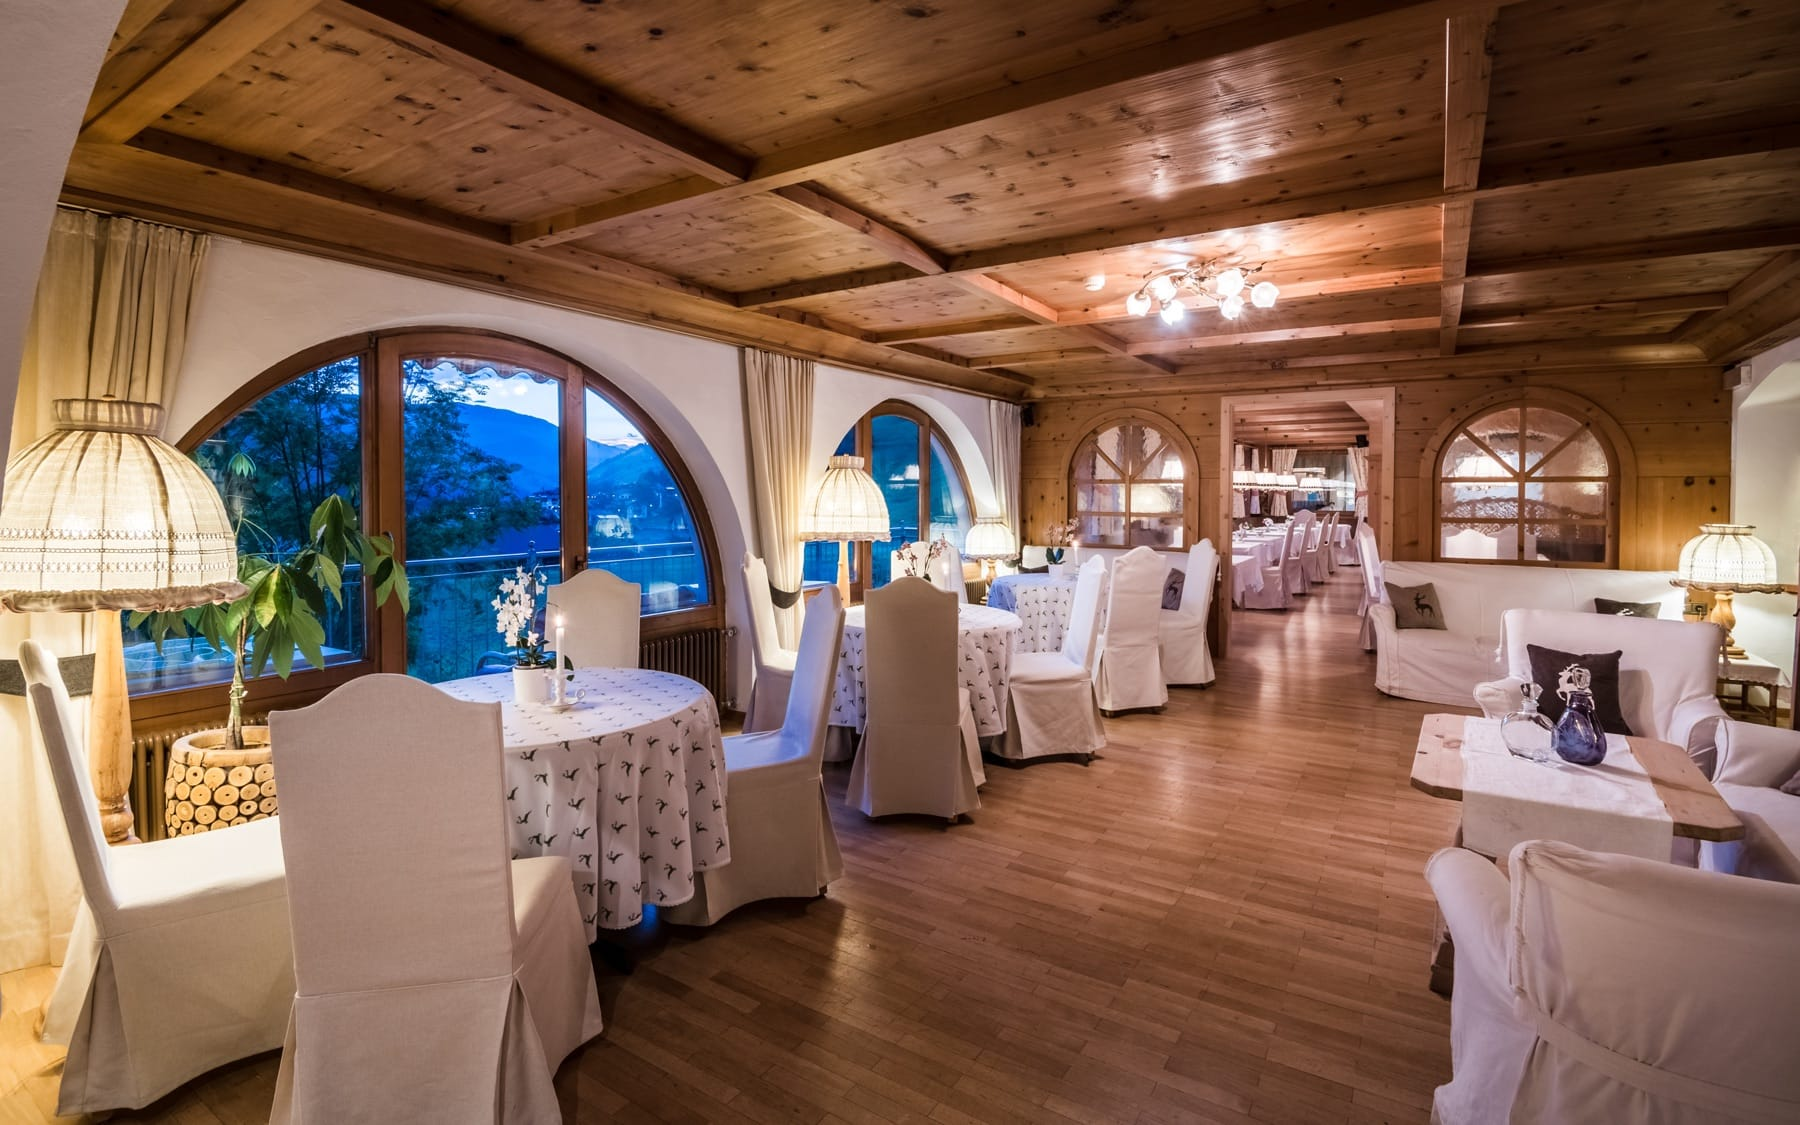 Romantic dinners in the Tyrolean Stube